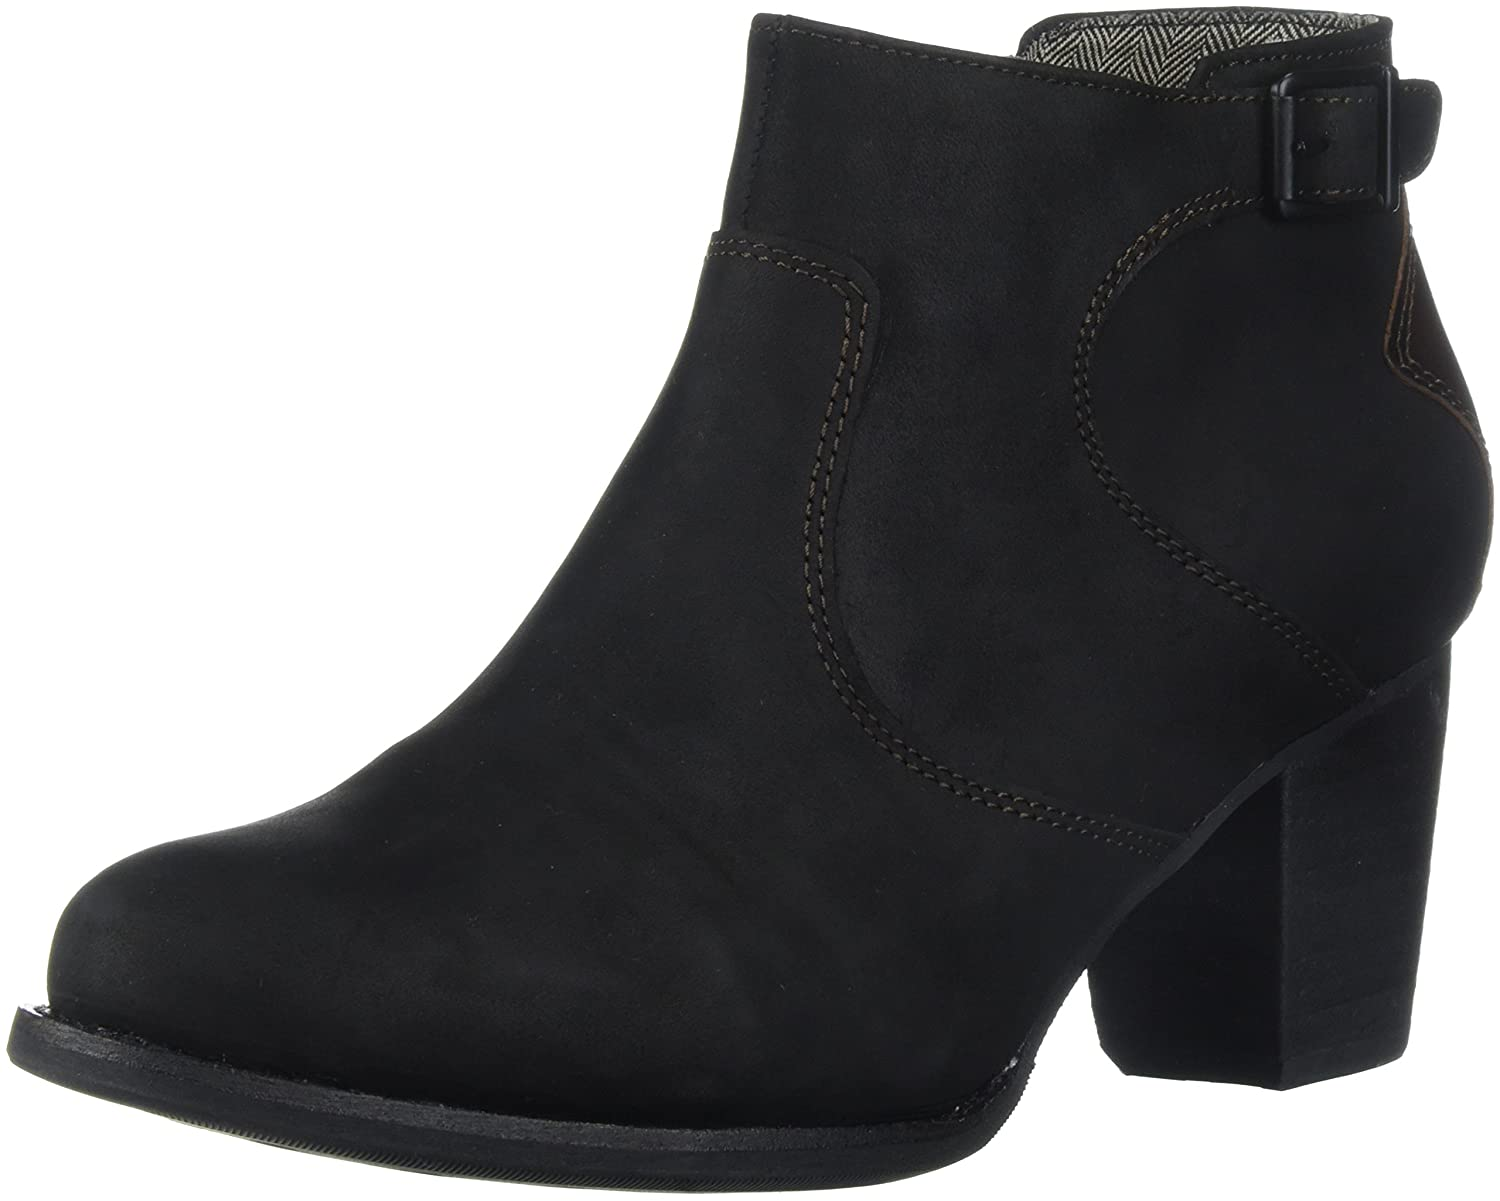 Caterpillar Women's Trestle Waterproof Leather Bootie with Side Zip Abd Stacked Heel Ankle Boot B01NAIXV0J 10 B(M) US|Black / Tawny